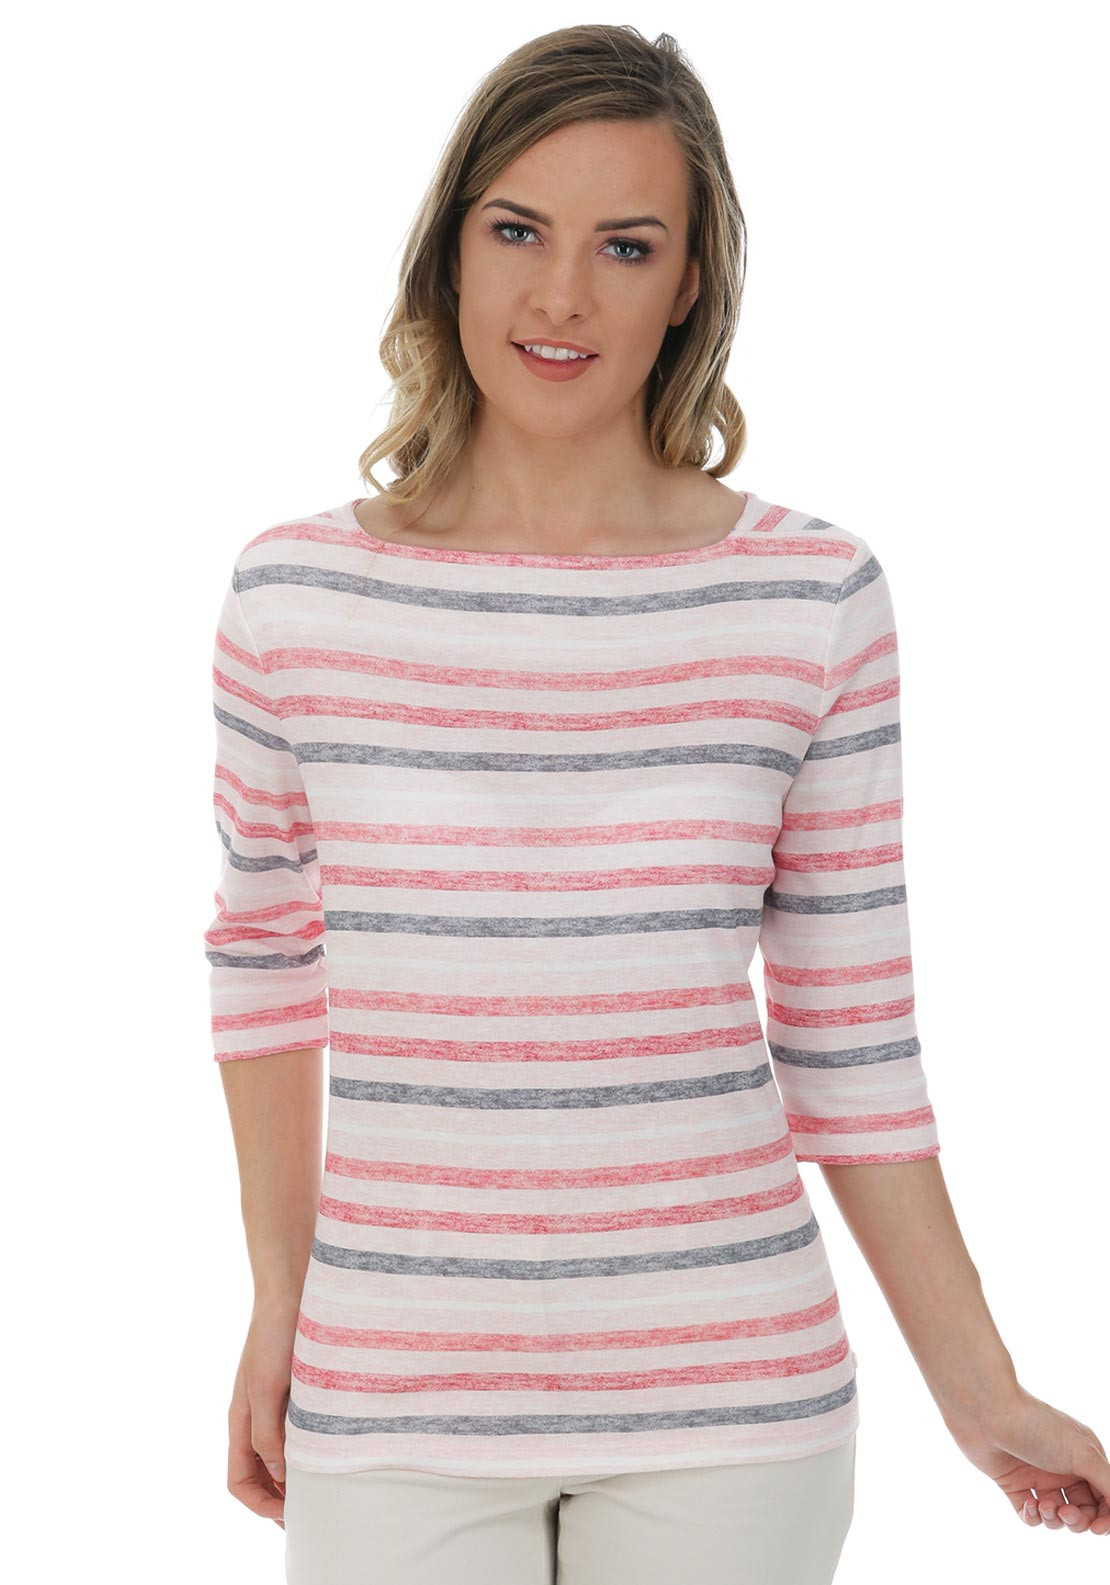 Olsen Striped Cropped Sleeve Top, Pink